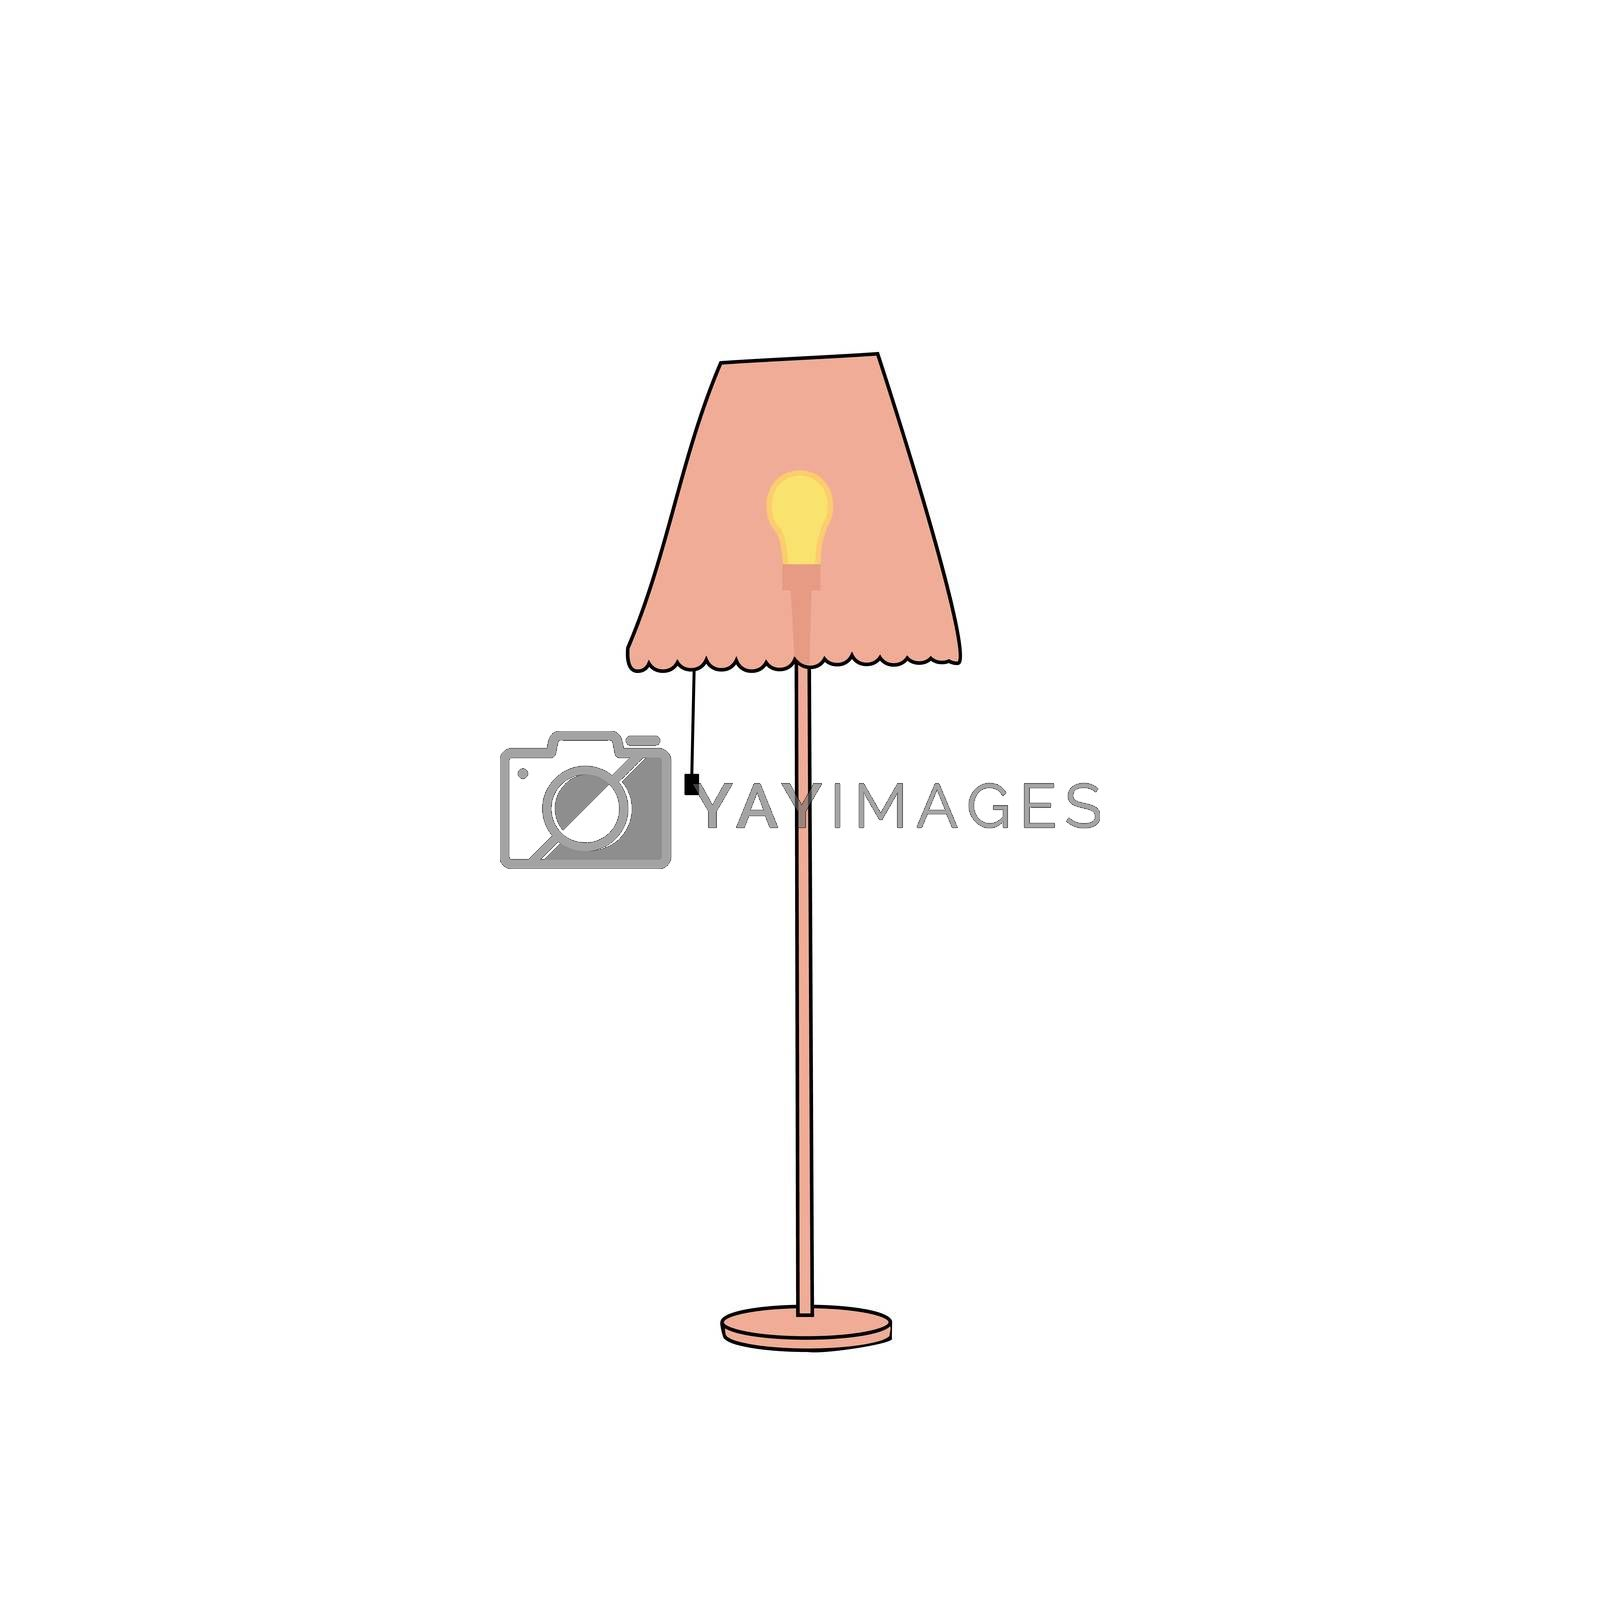 Yellow floor lamp on a white background.